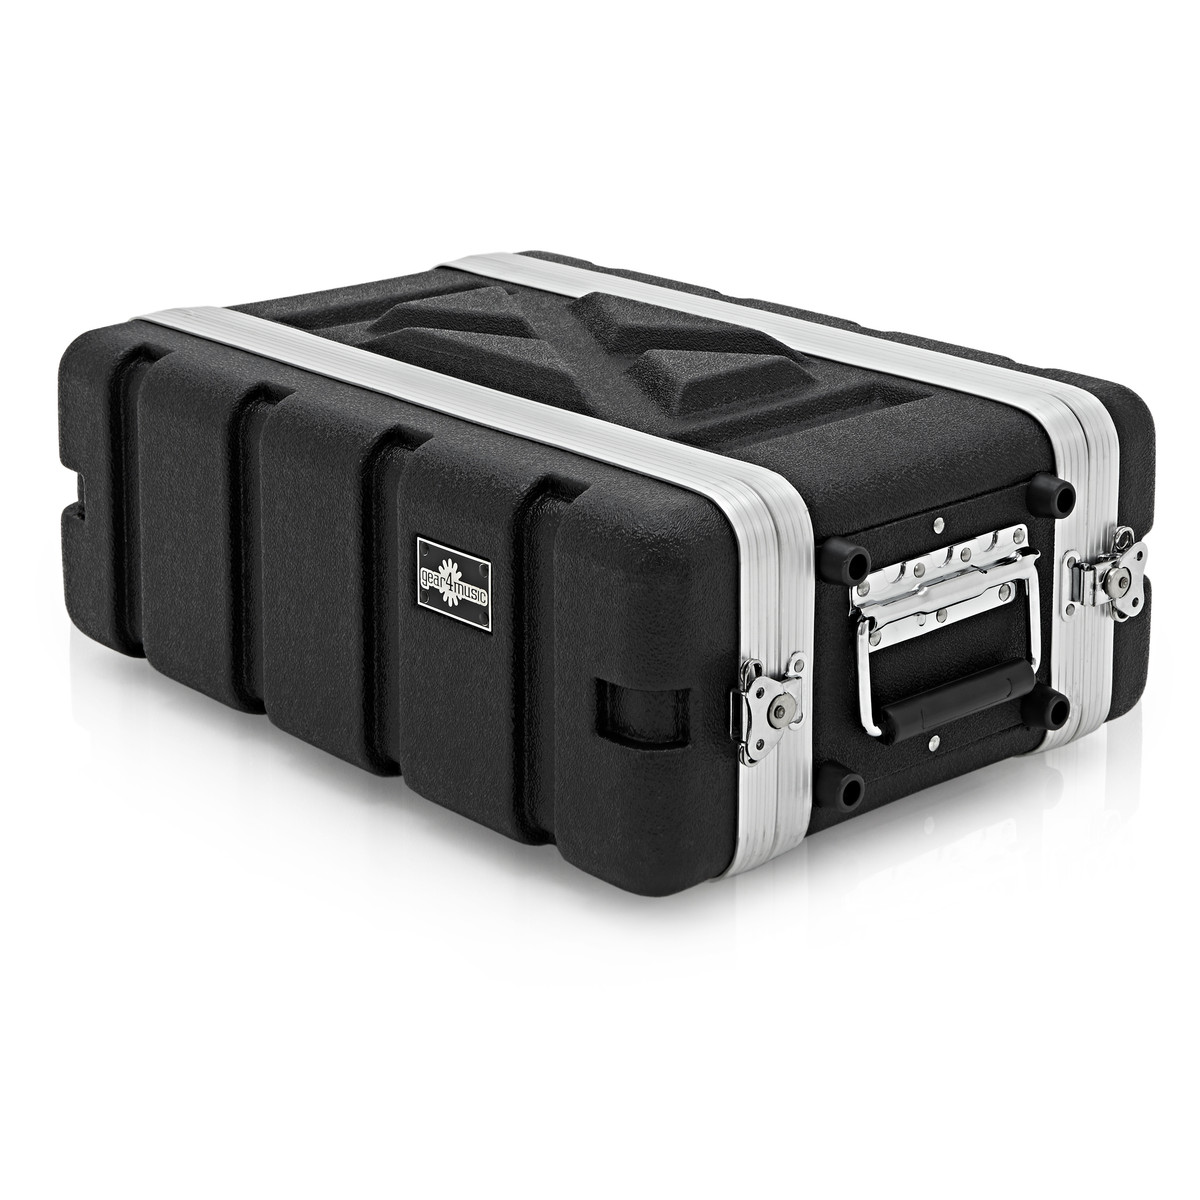 Image of 3U Shallow Rack Case by Gear4music